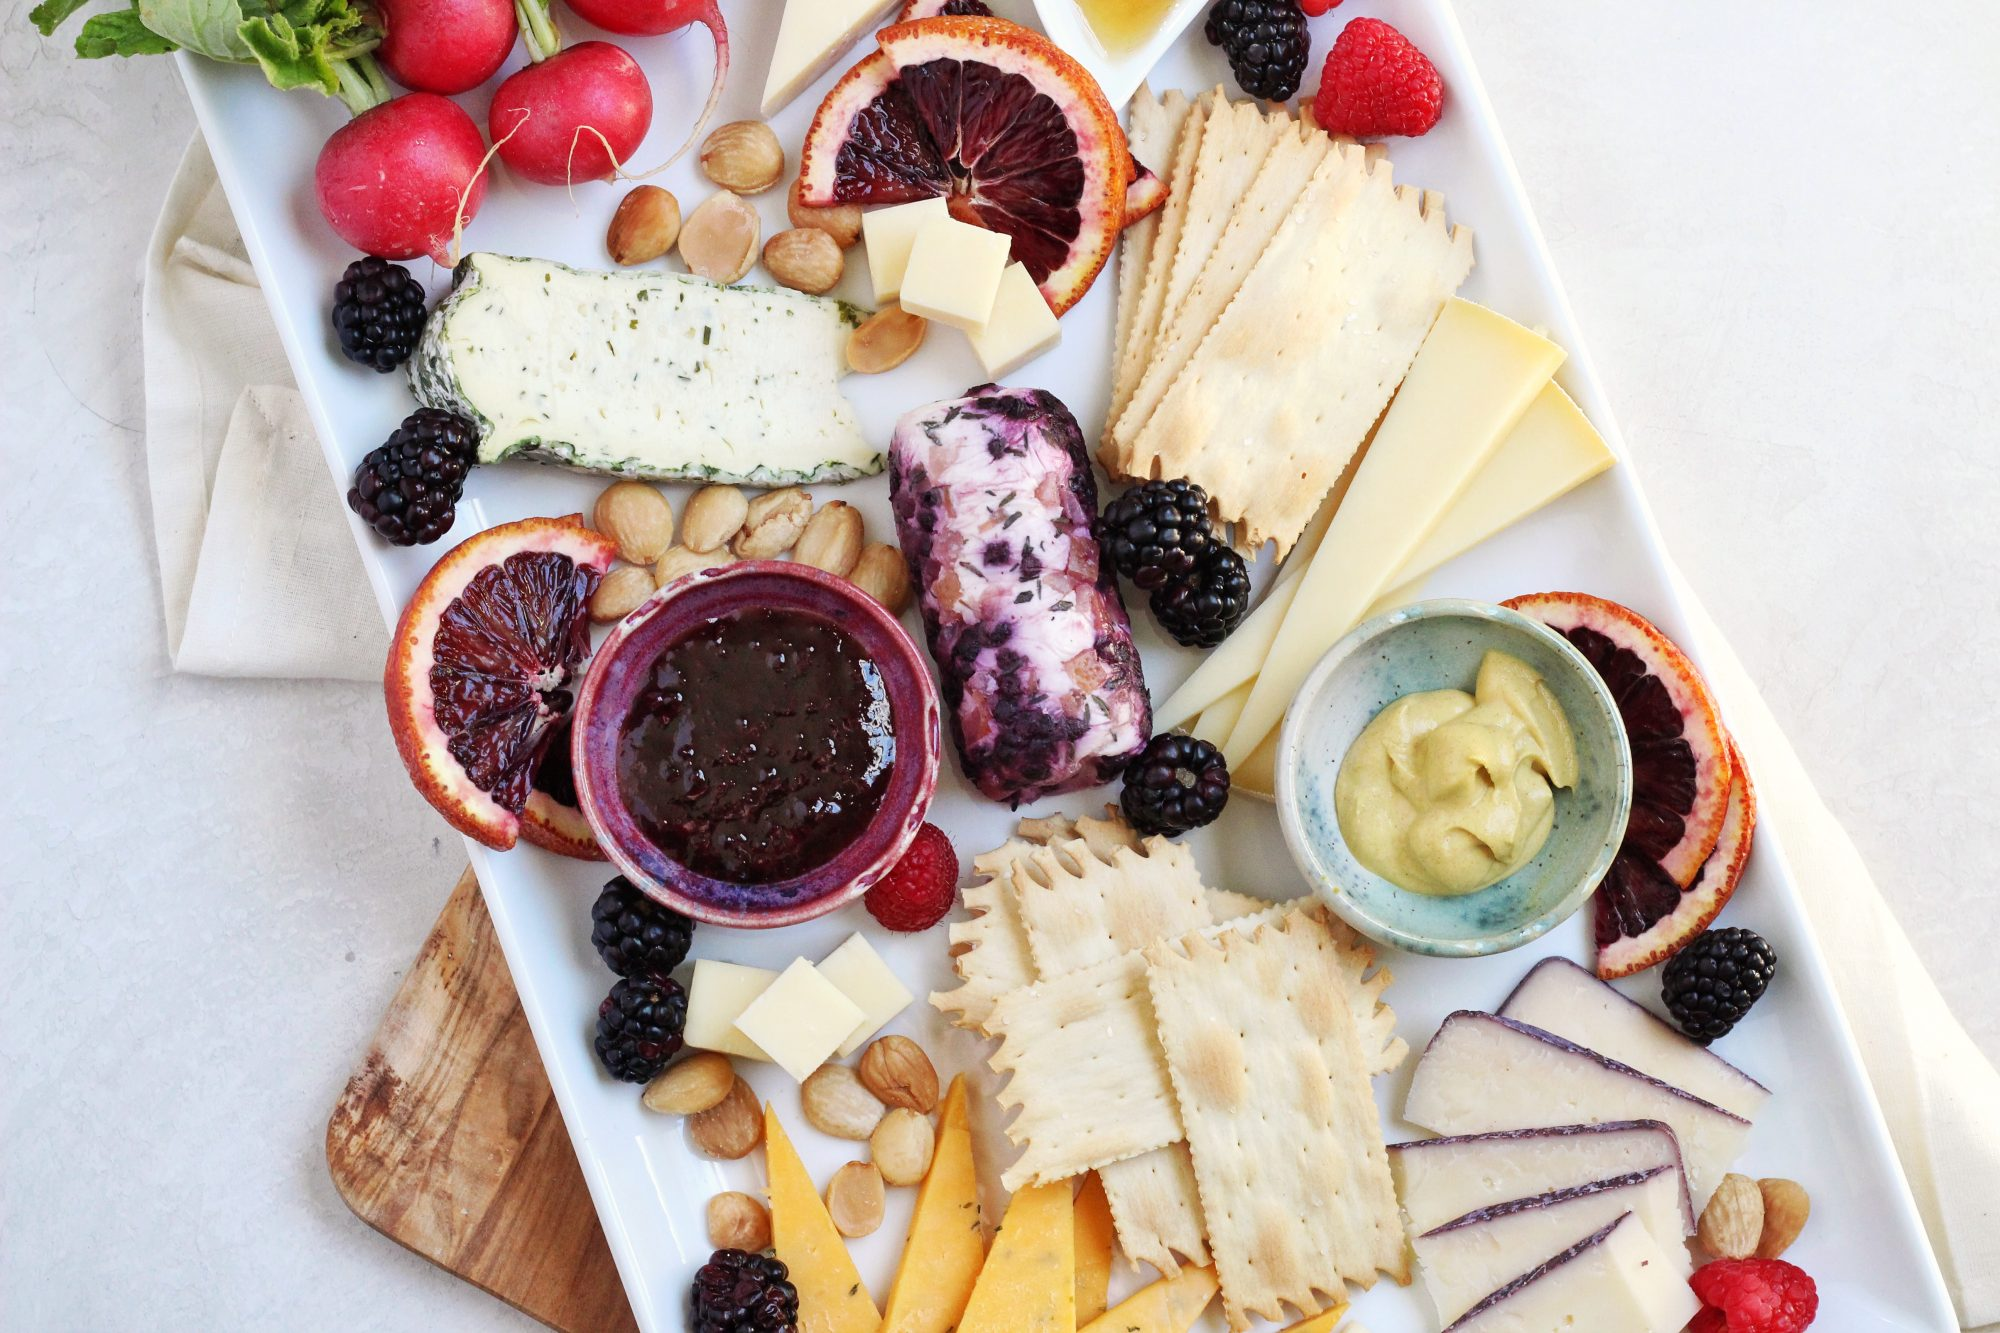 Cheese board ideas for entertaining